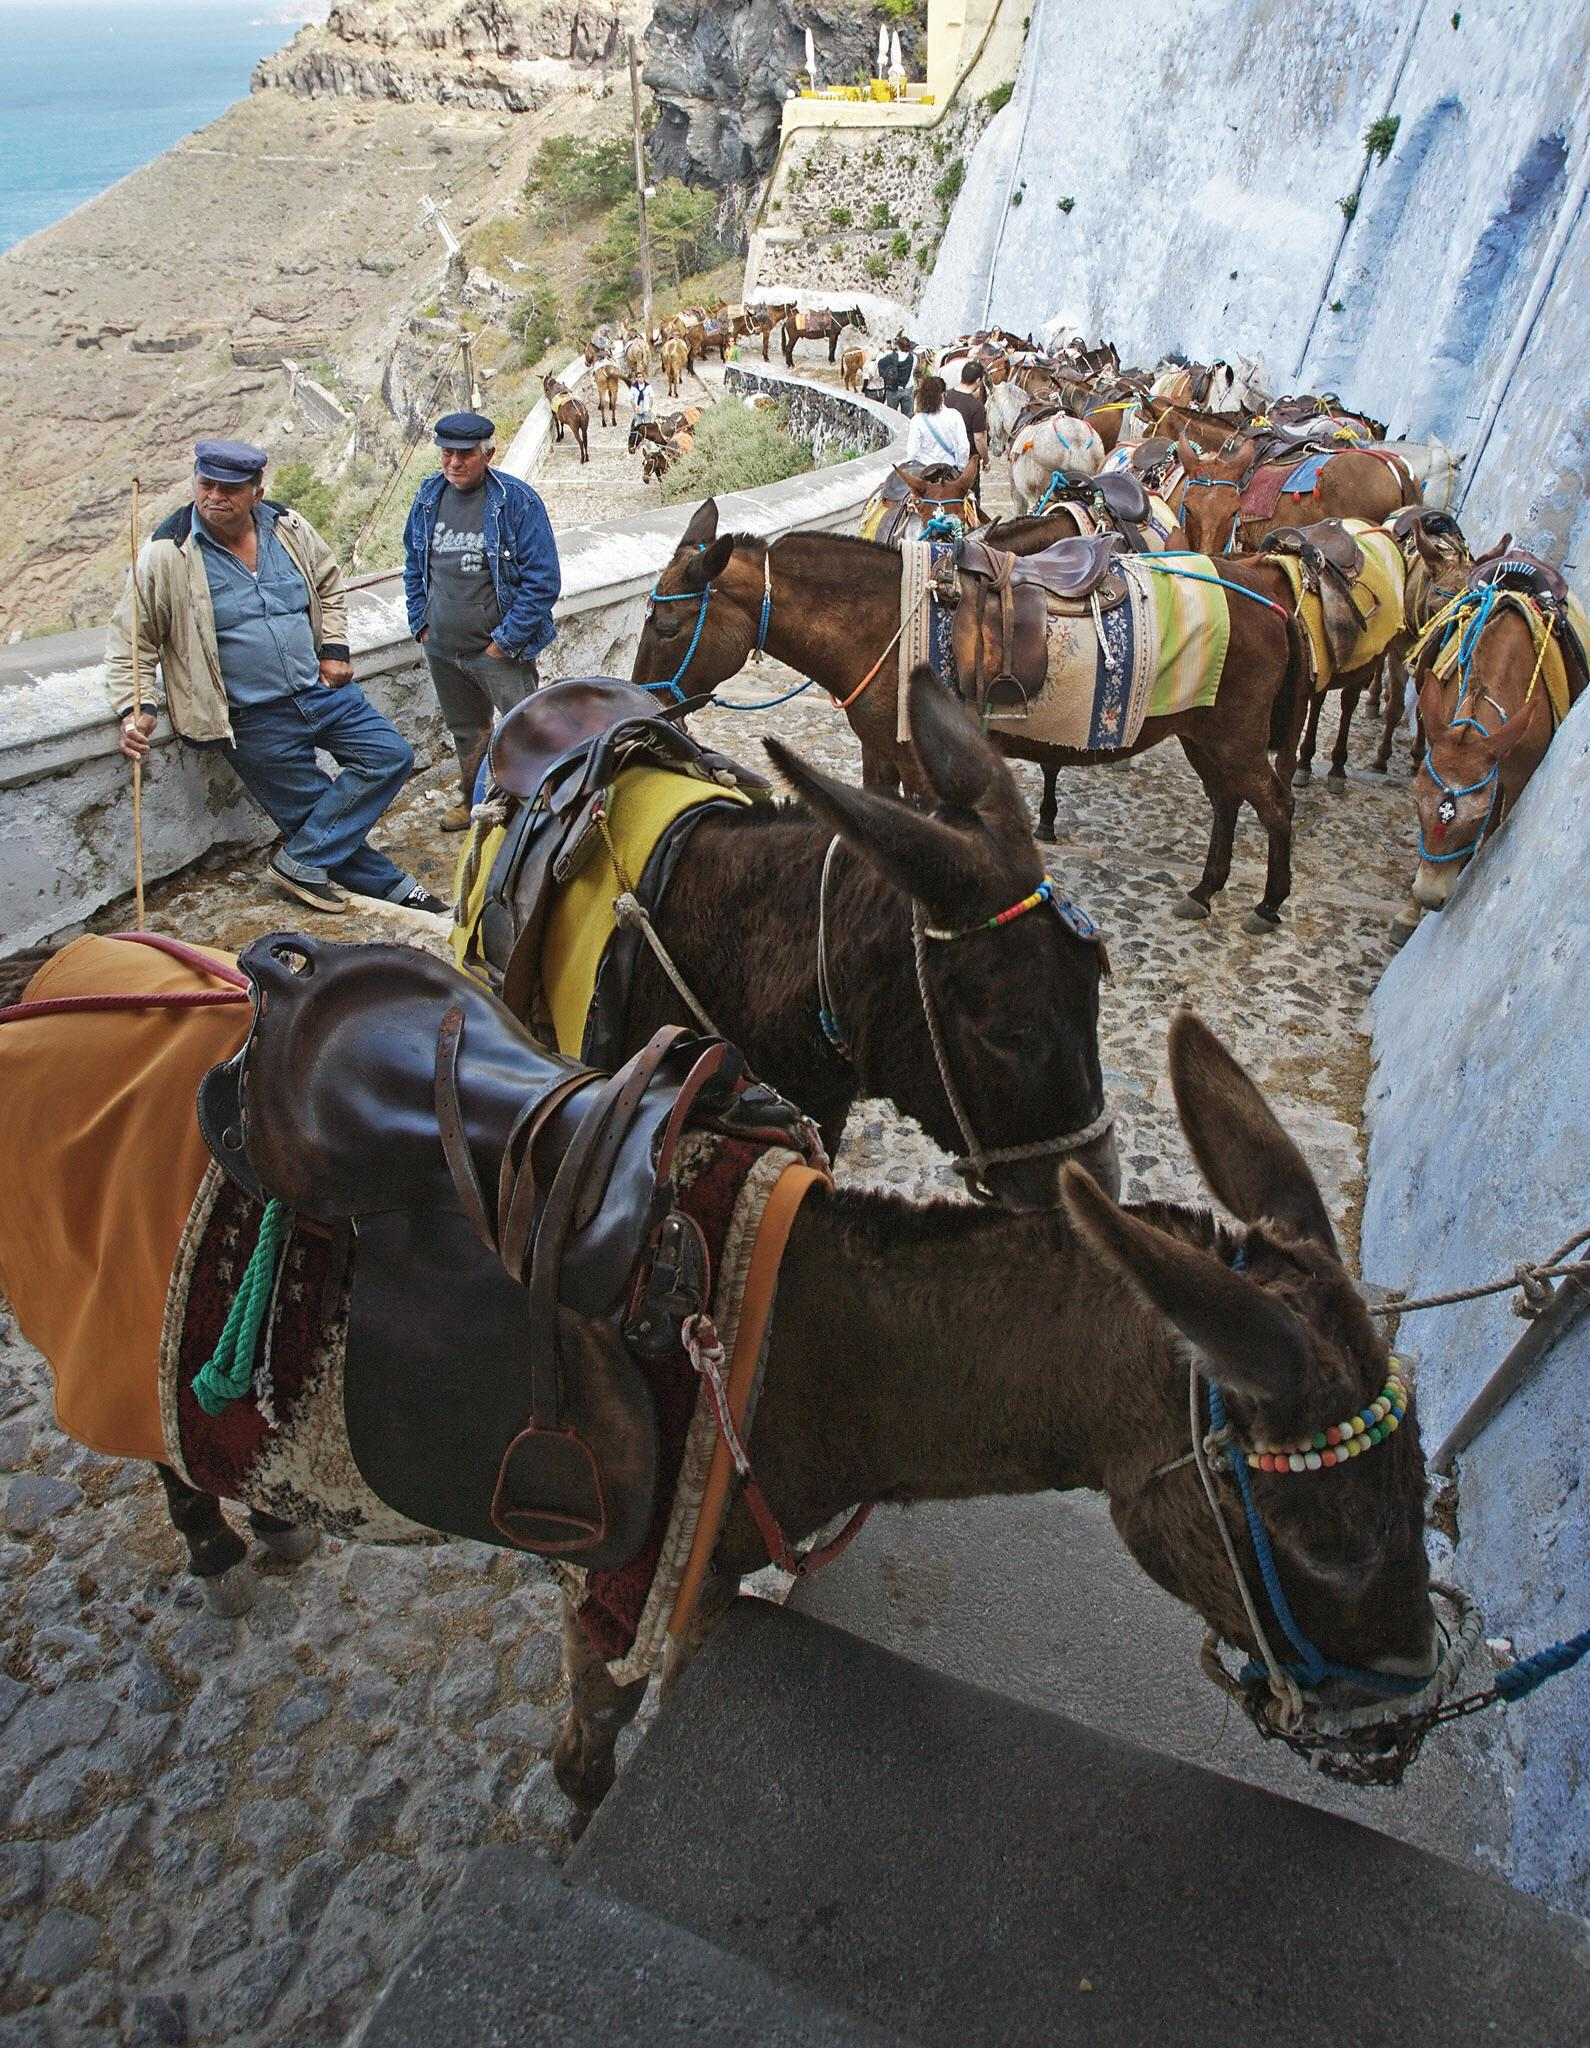 In Greece, banned fat tourists ride a donkey 93